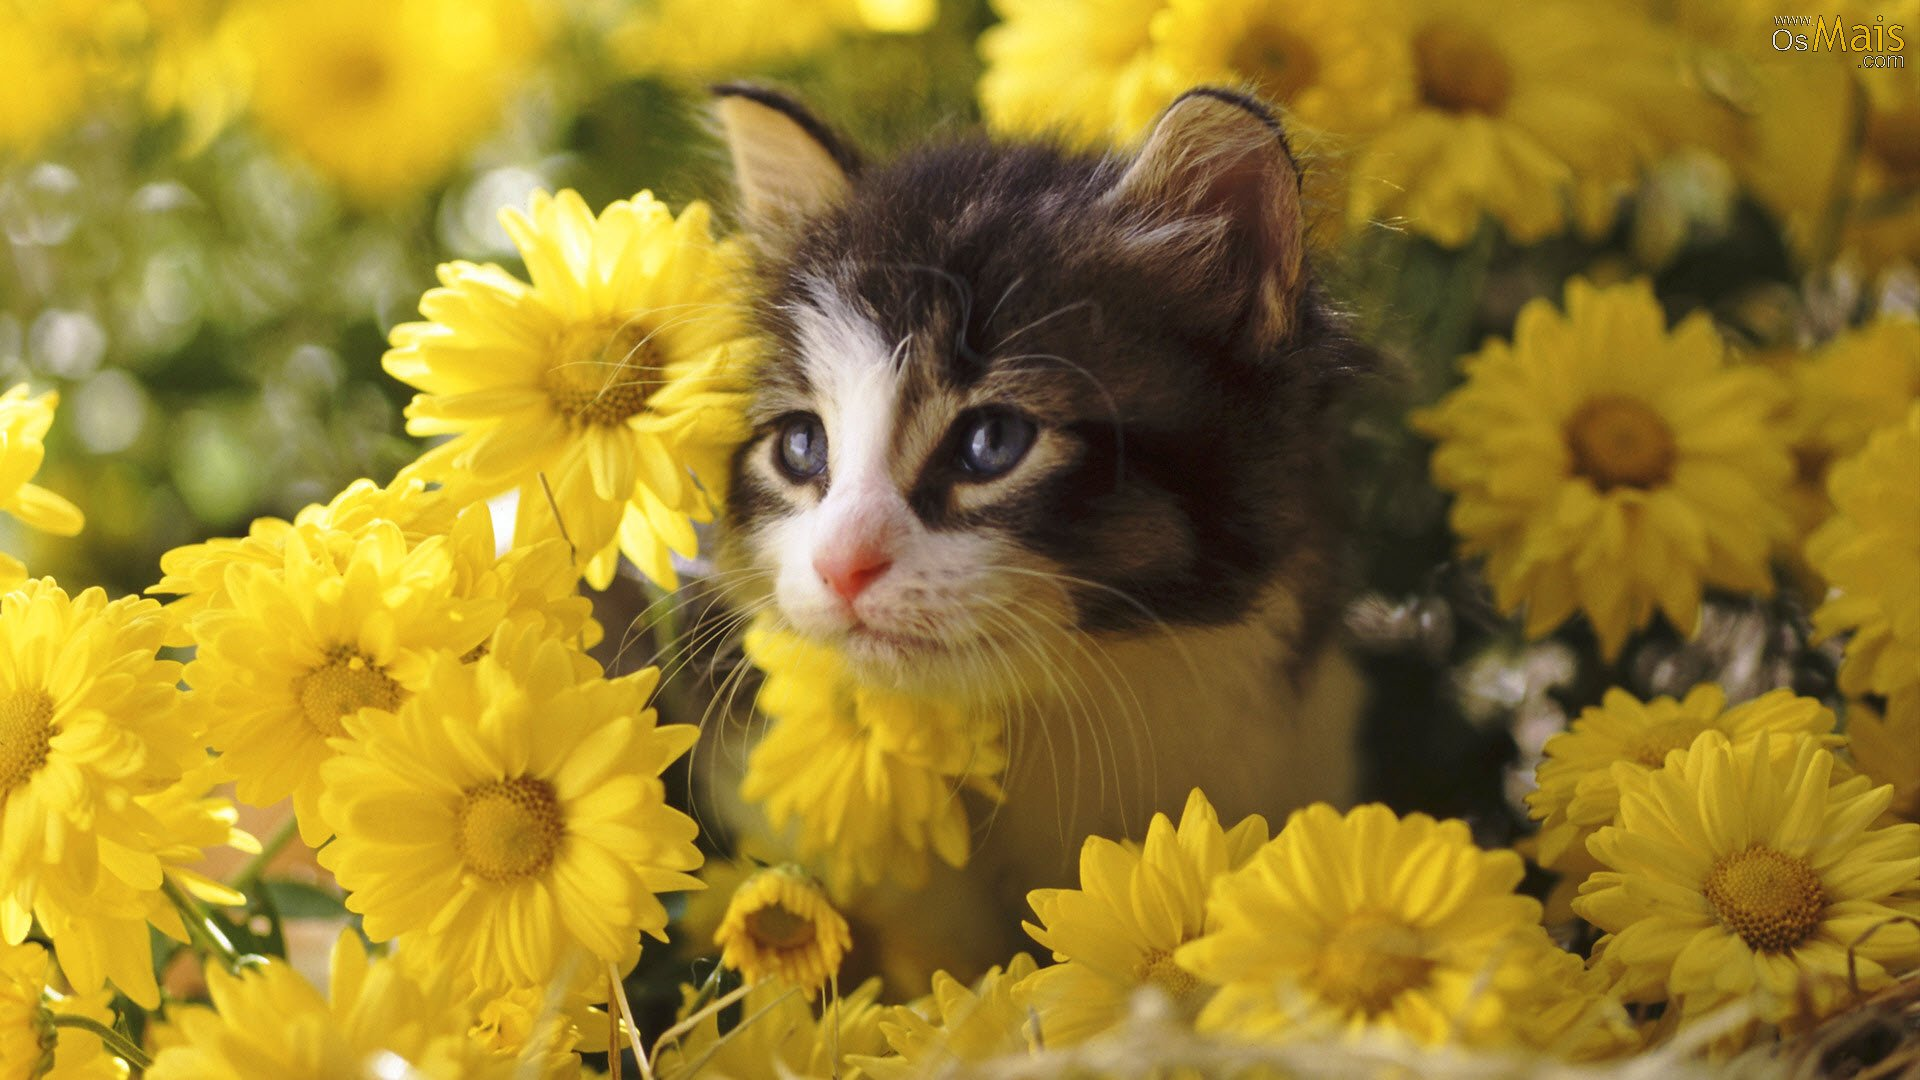 http://www.osmais.com/wallpapers/201112/gato-flores-wallpaper.jpg